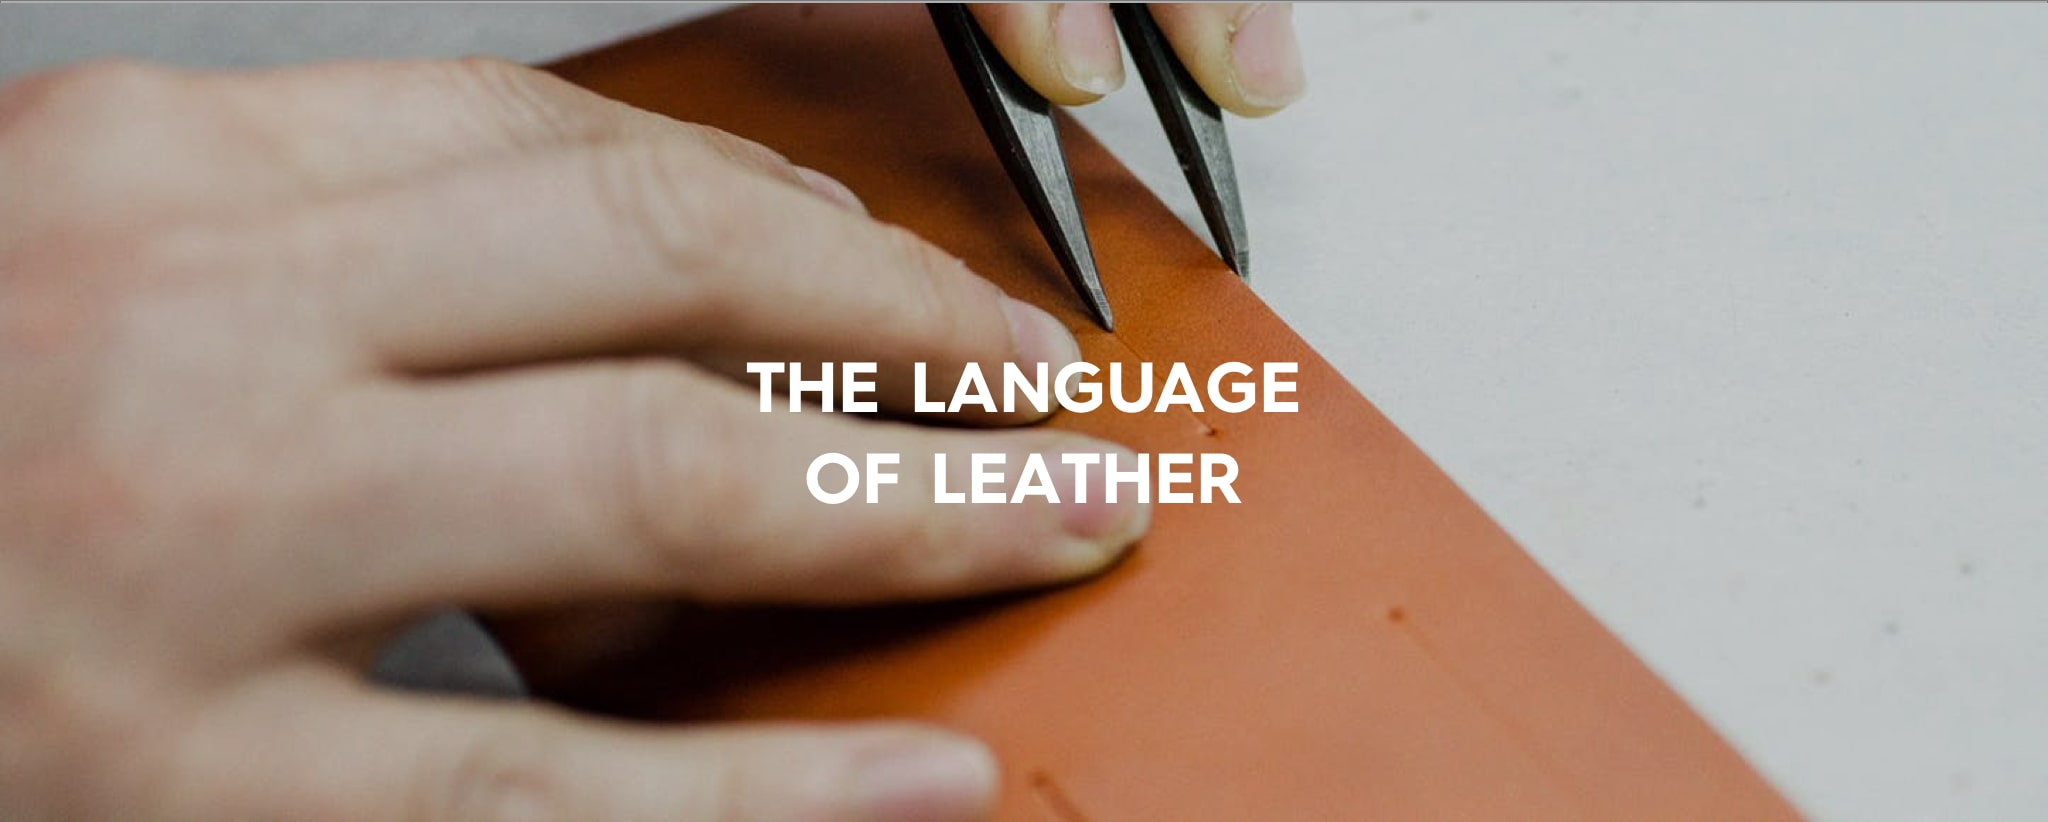 Sustainability-The-Language-Of-Leather-Svenklas-Mag